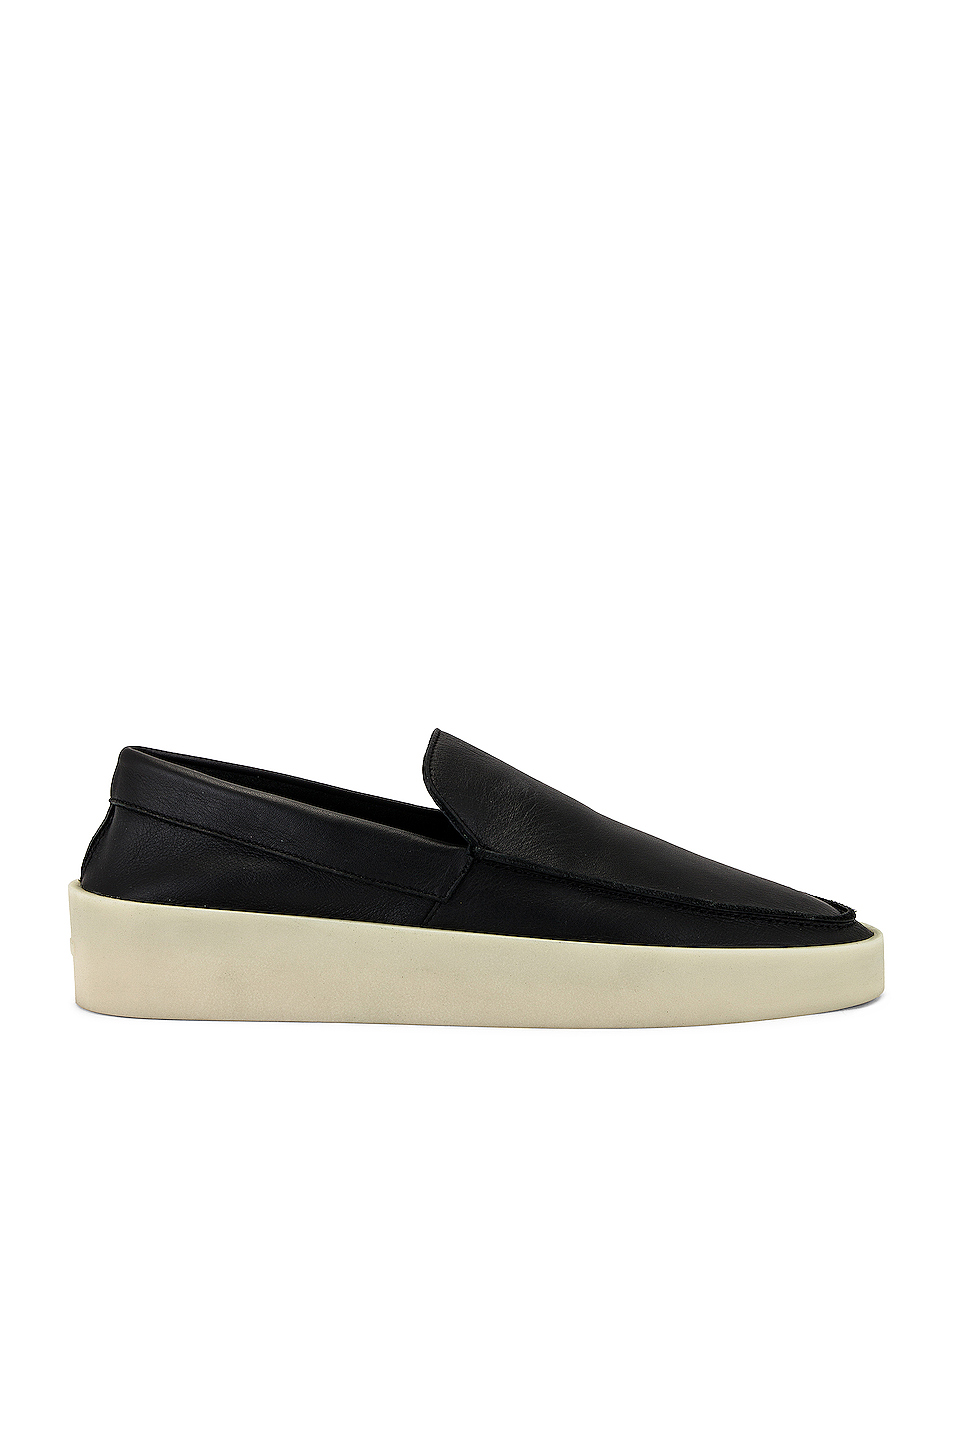 Fear of God The Loafer